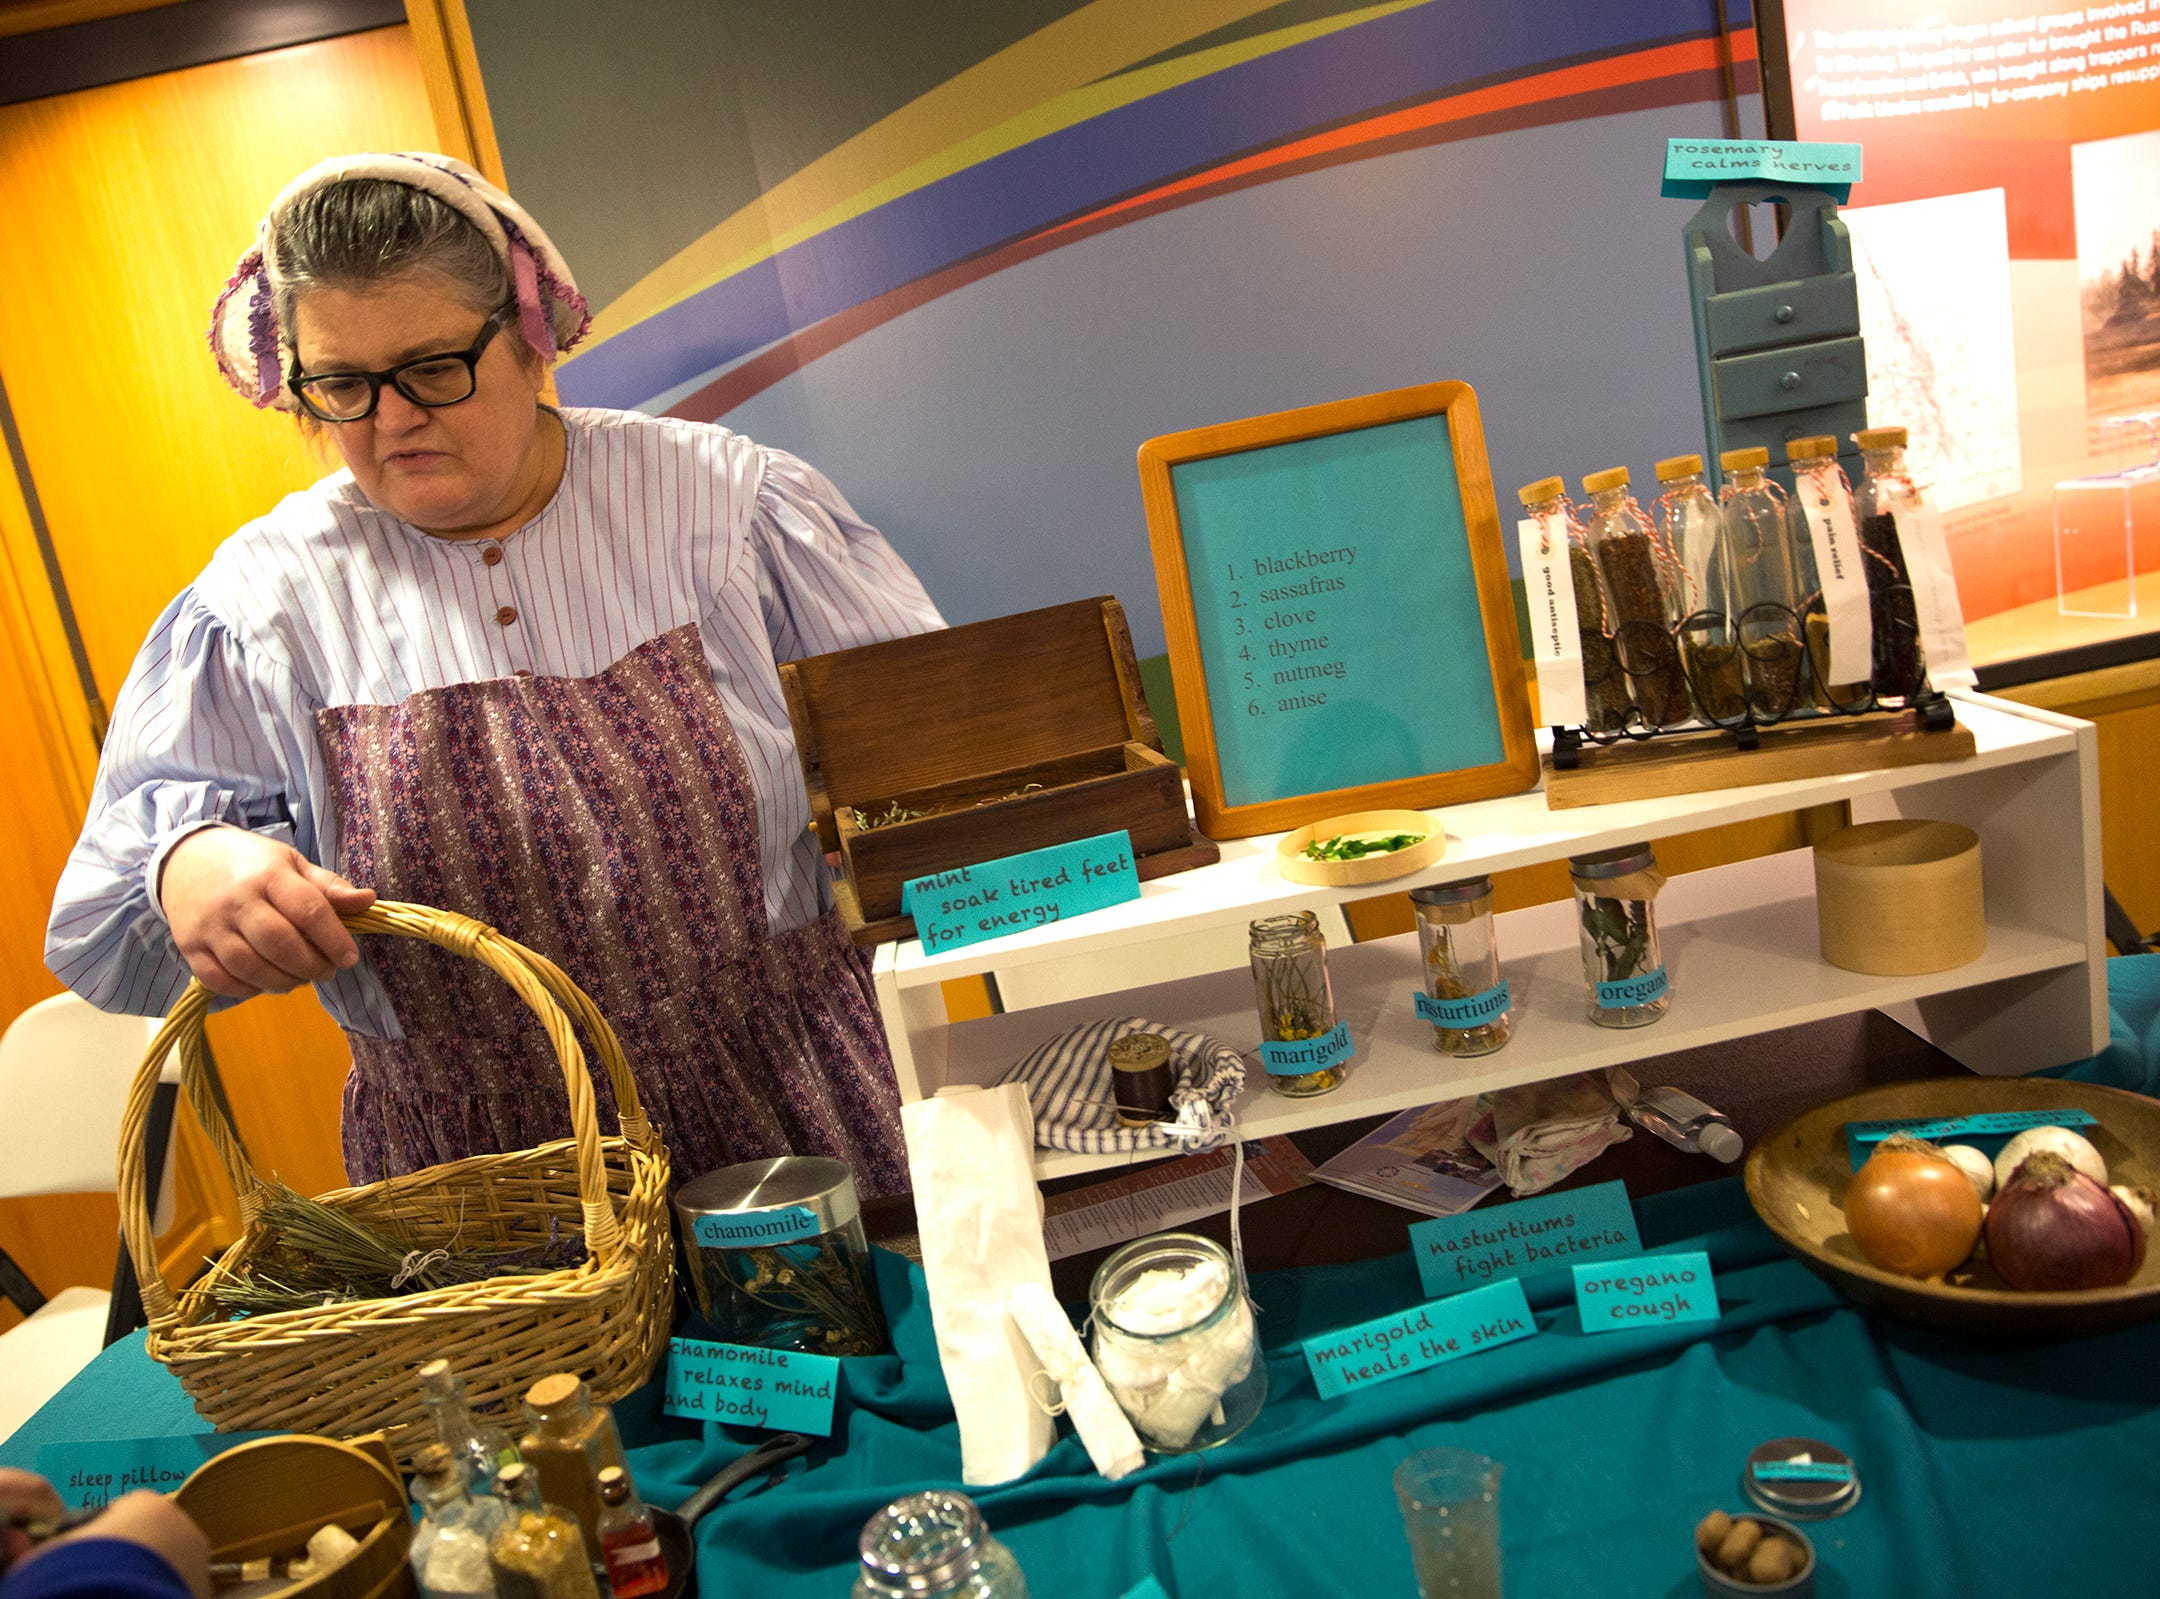 Janet Land, dressed as a granny doctor from the 1850's, shows some of the items used in that era during Oregon's 160th Birthday Celebration at the Oregon State Capitol in Salem on Saturday, Feb. 16, 2019.